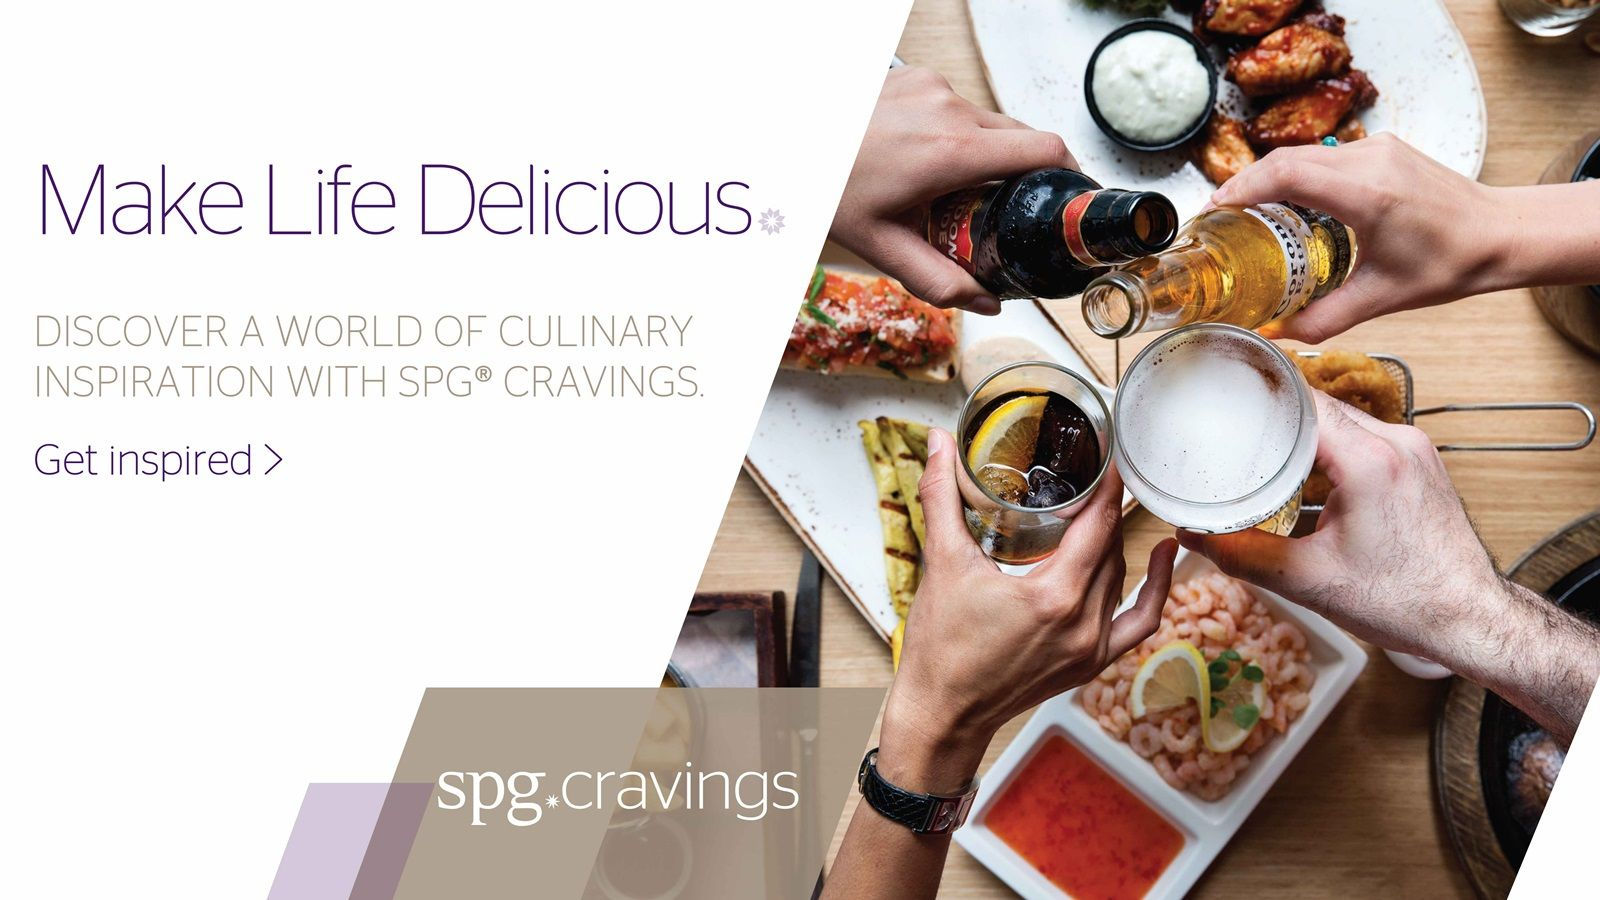 SPG® Cravings